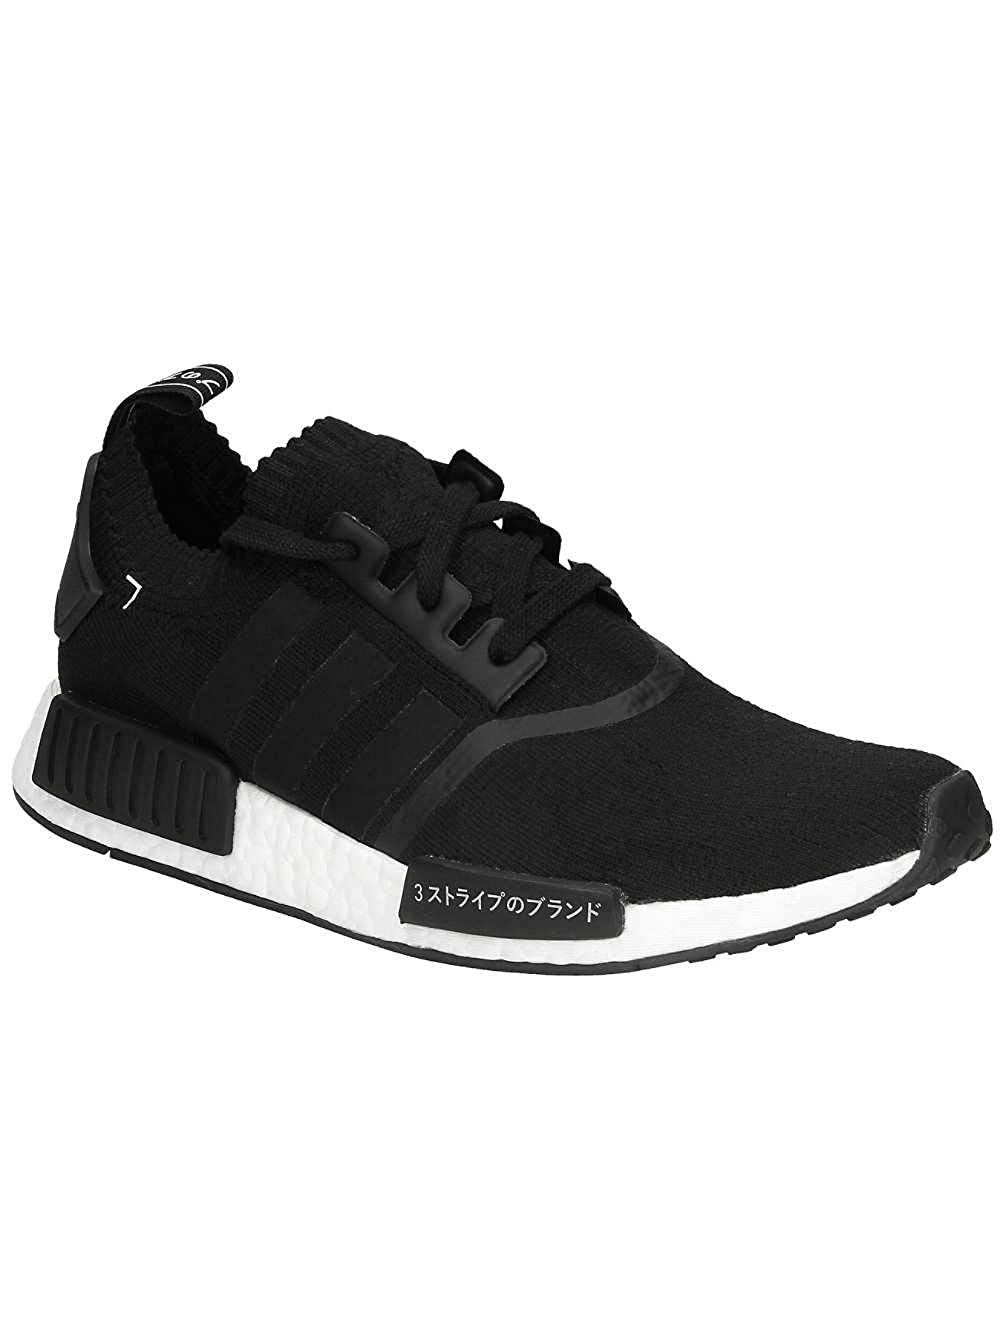 discount sale 845bf 5333e Amazon.com  adidas NMD R1 Pk Japan Boost - S81847 - Size 11 Black, White   Road Running